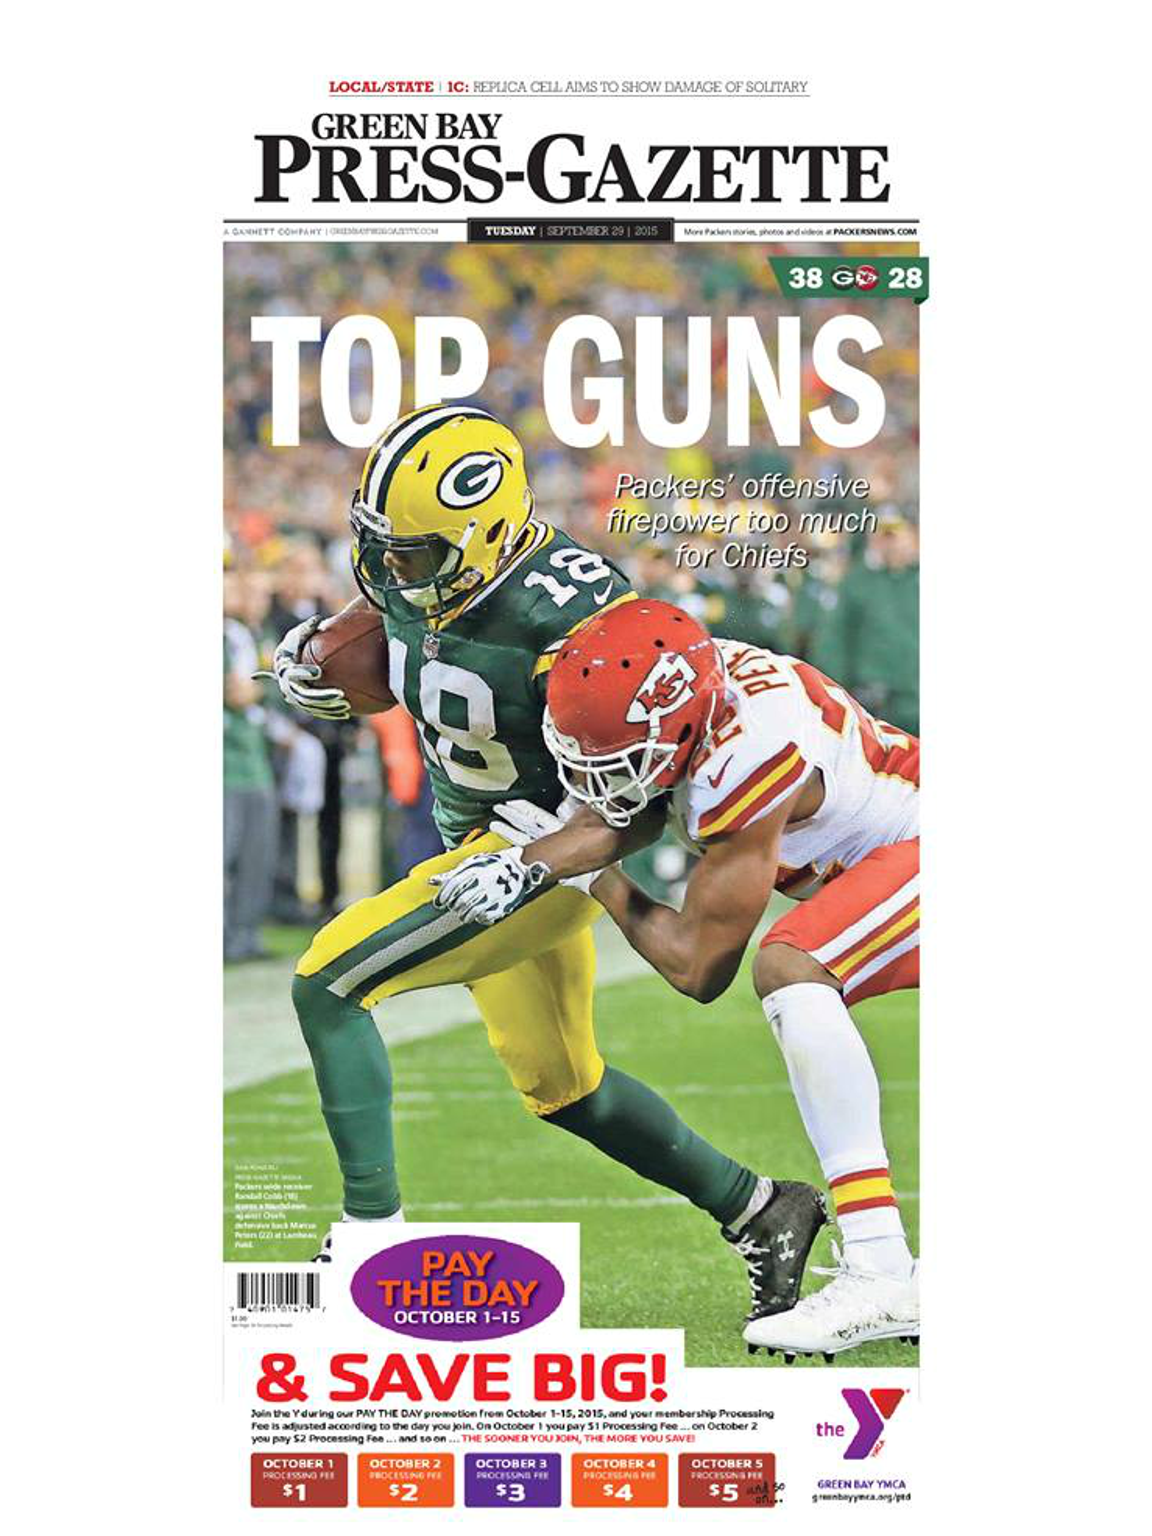 Game 3: Packers 38, Chiefs 28